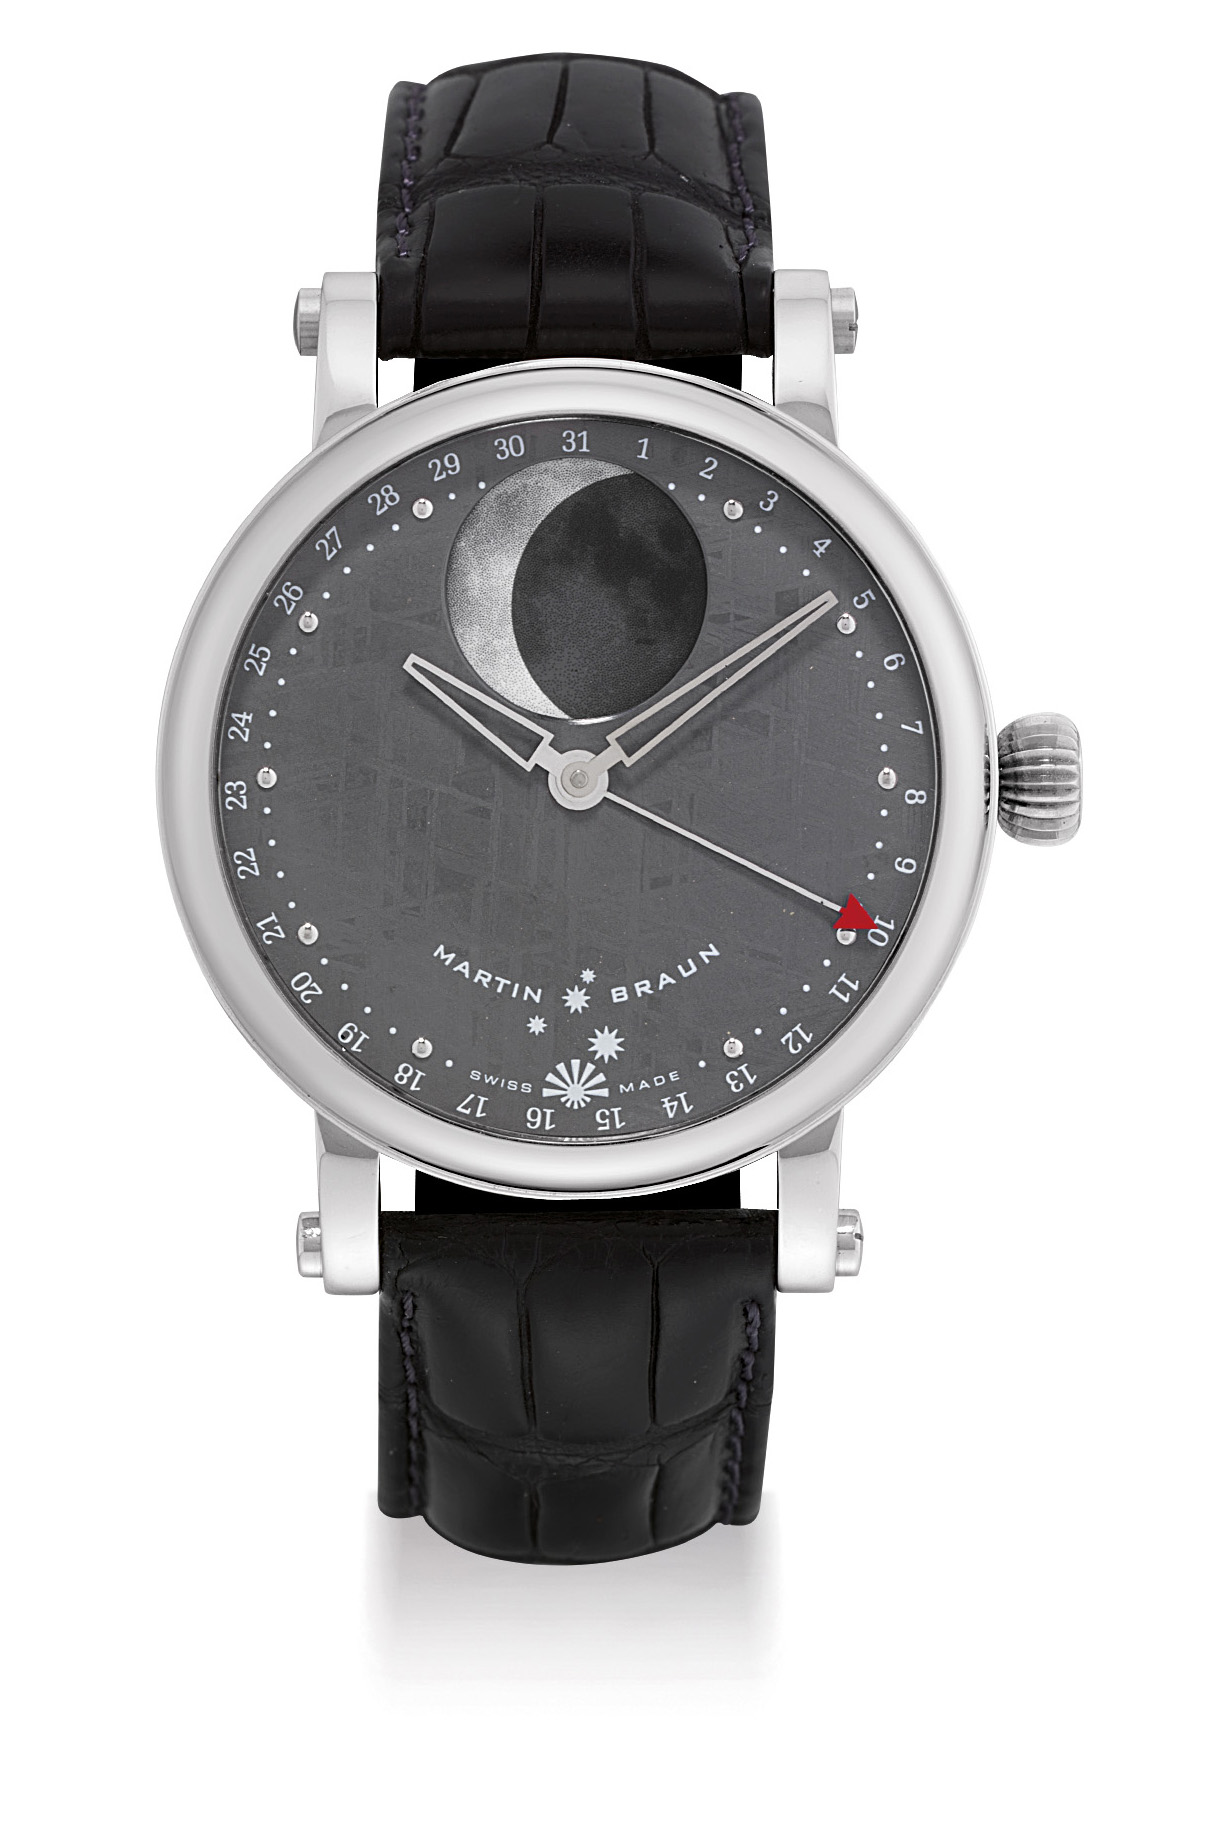 MARTIN BRAUN. AN UNUSUAL STAINLESS STEEL AUTOMATIC WRISTWATCH WITH MOON PHASES, DATE AND METEORITE DIAL